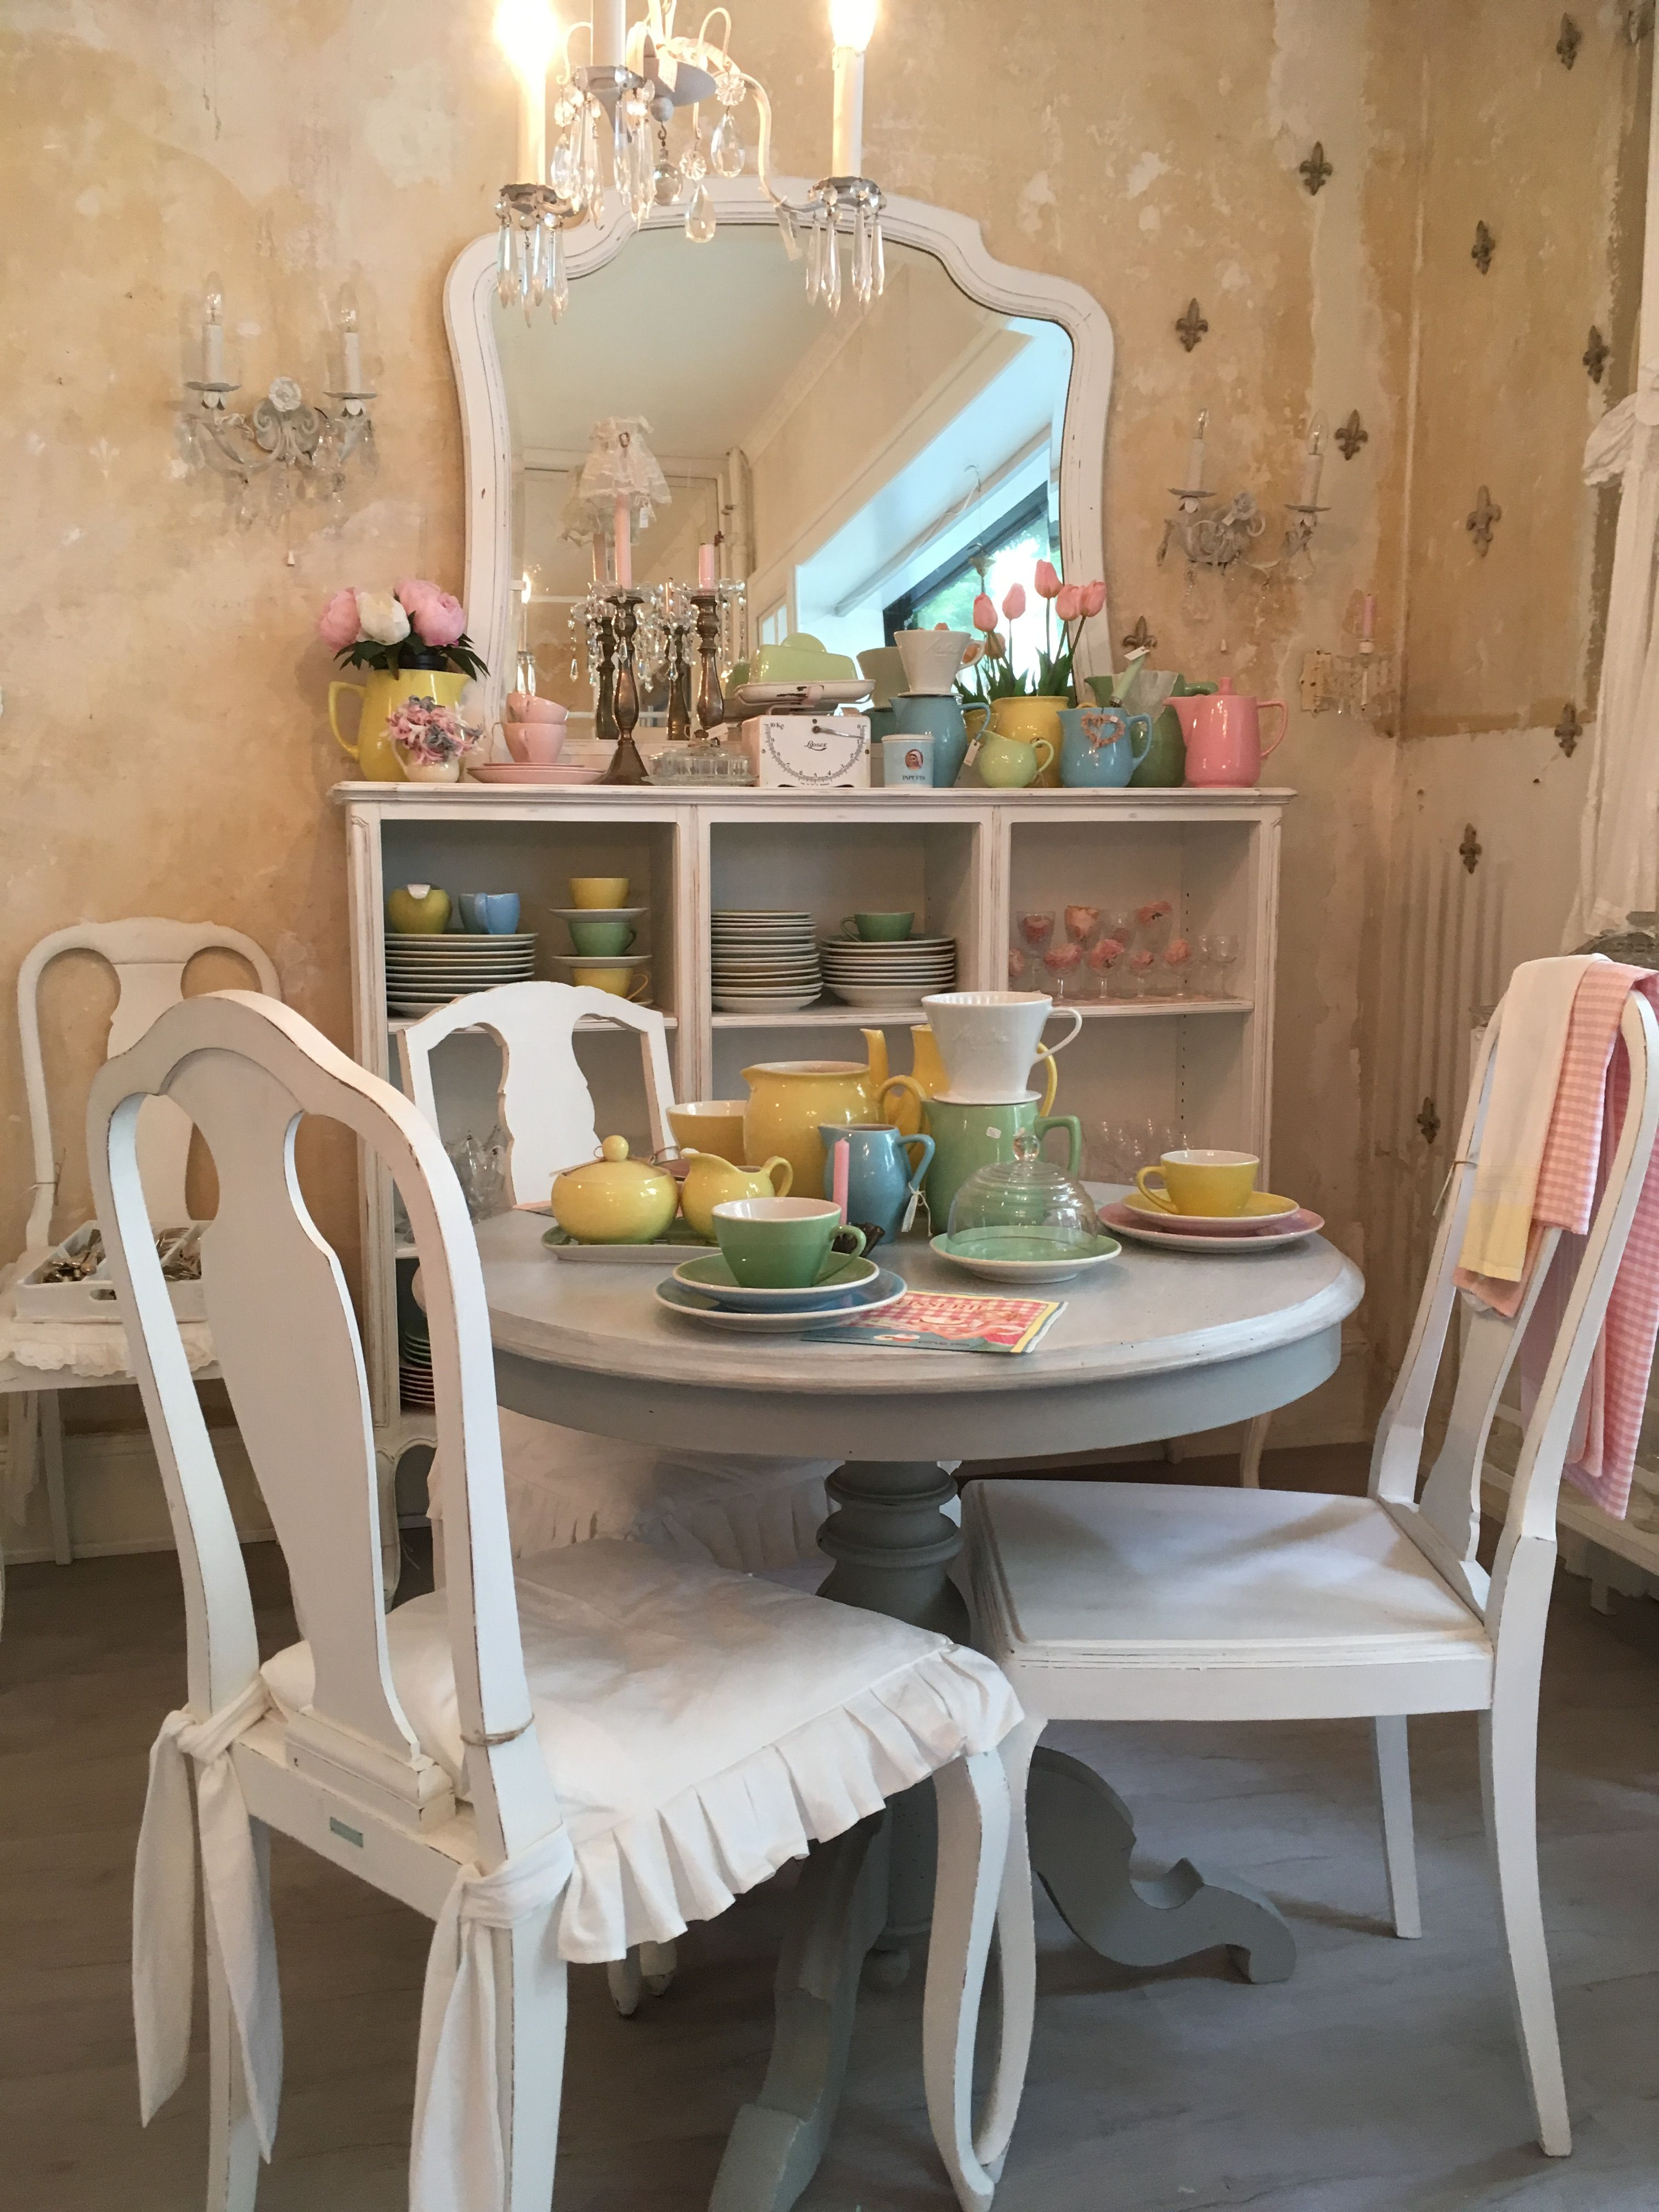 Esszimmer vintage   Shabby chic chairs, Chic chair, Shabby chic